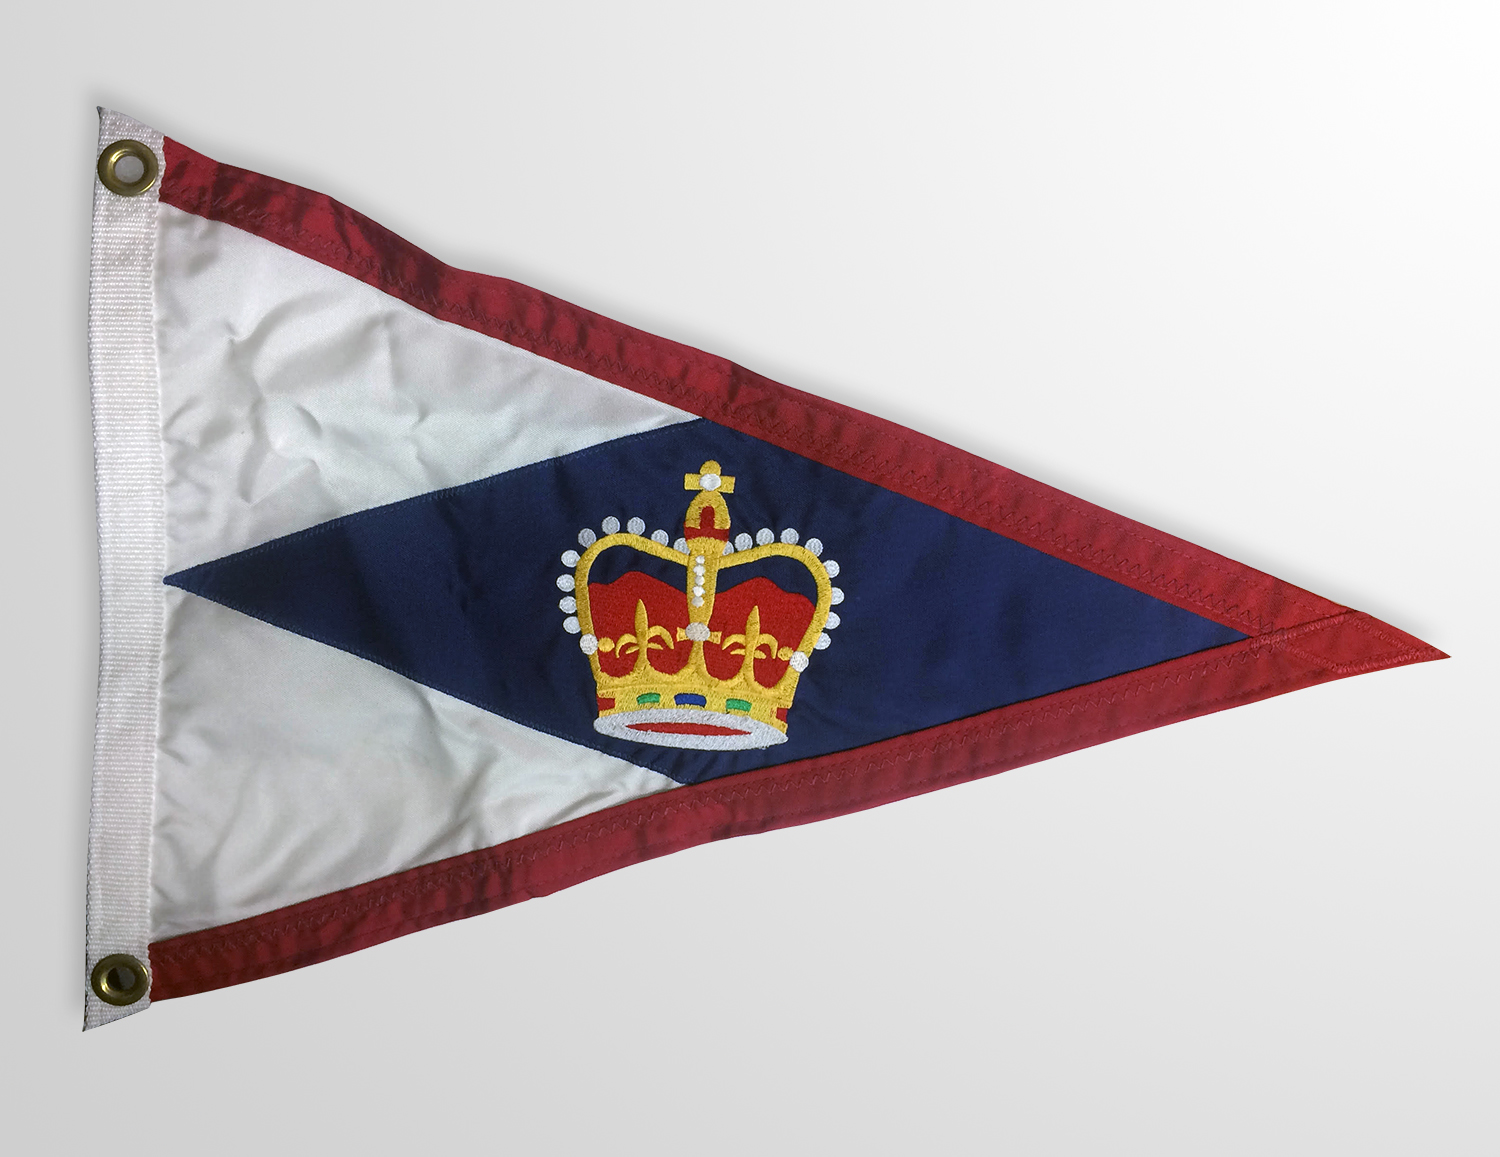 Cuatom Boat Flags Canada, Custom Burgee Flags, Triangle & Rectangle